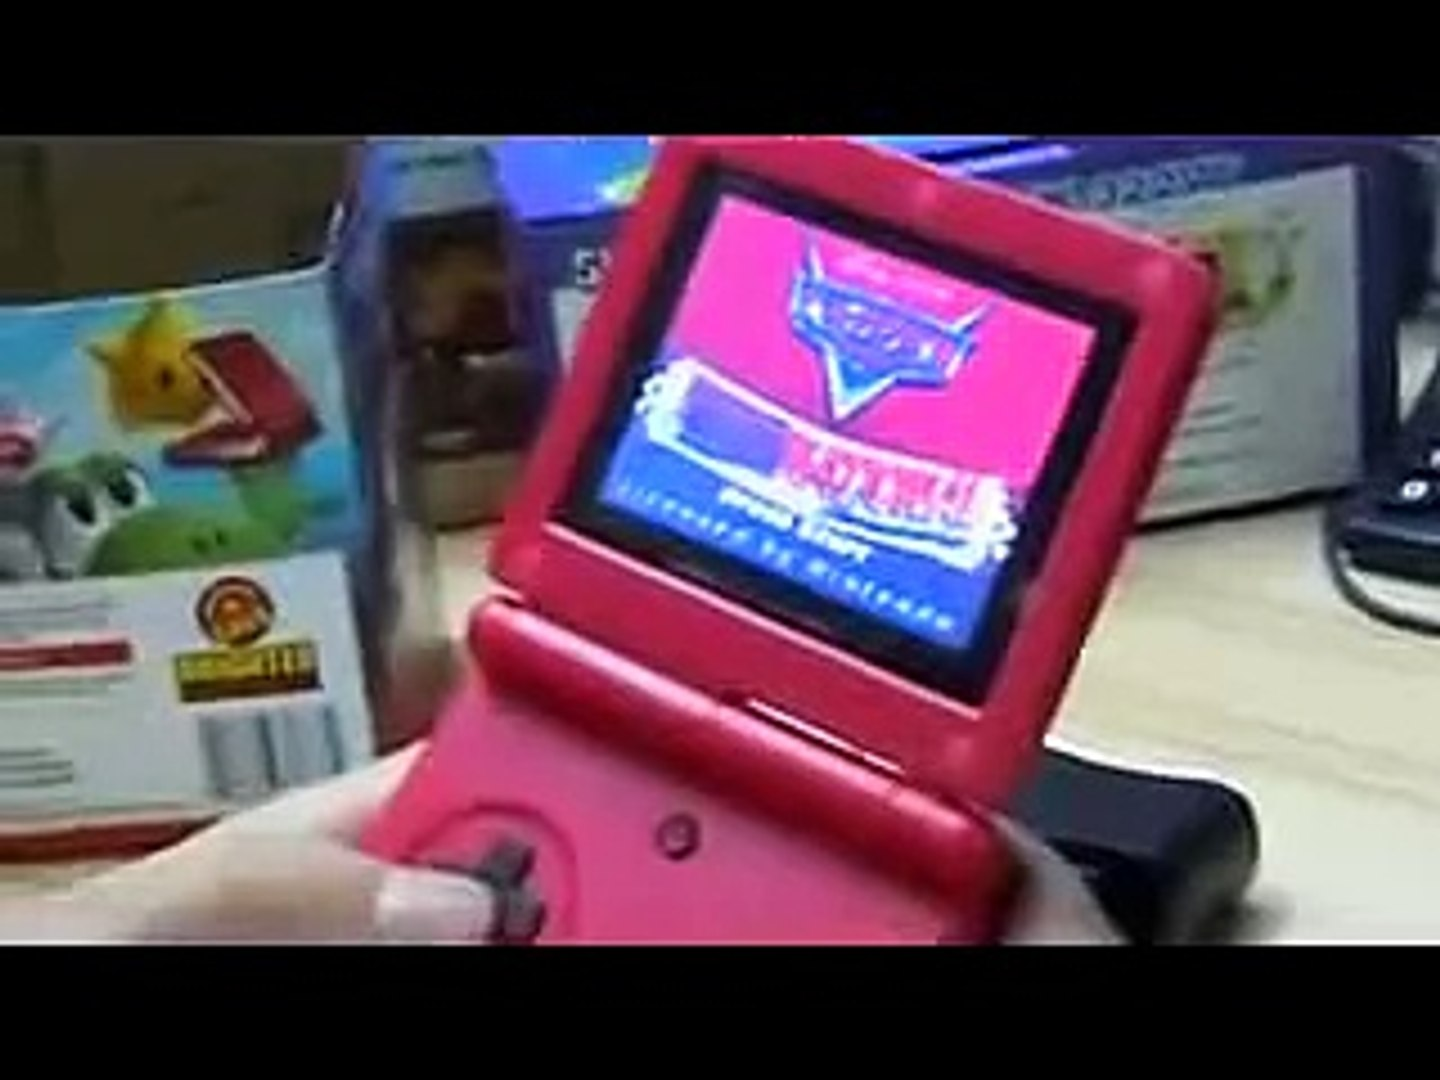 Re: GBA SP 32 bit game consoles, nintendo games collection!